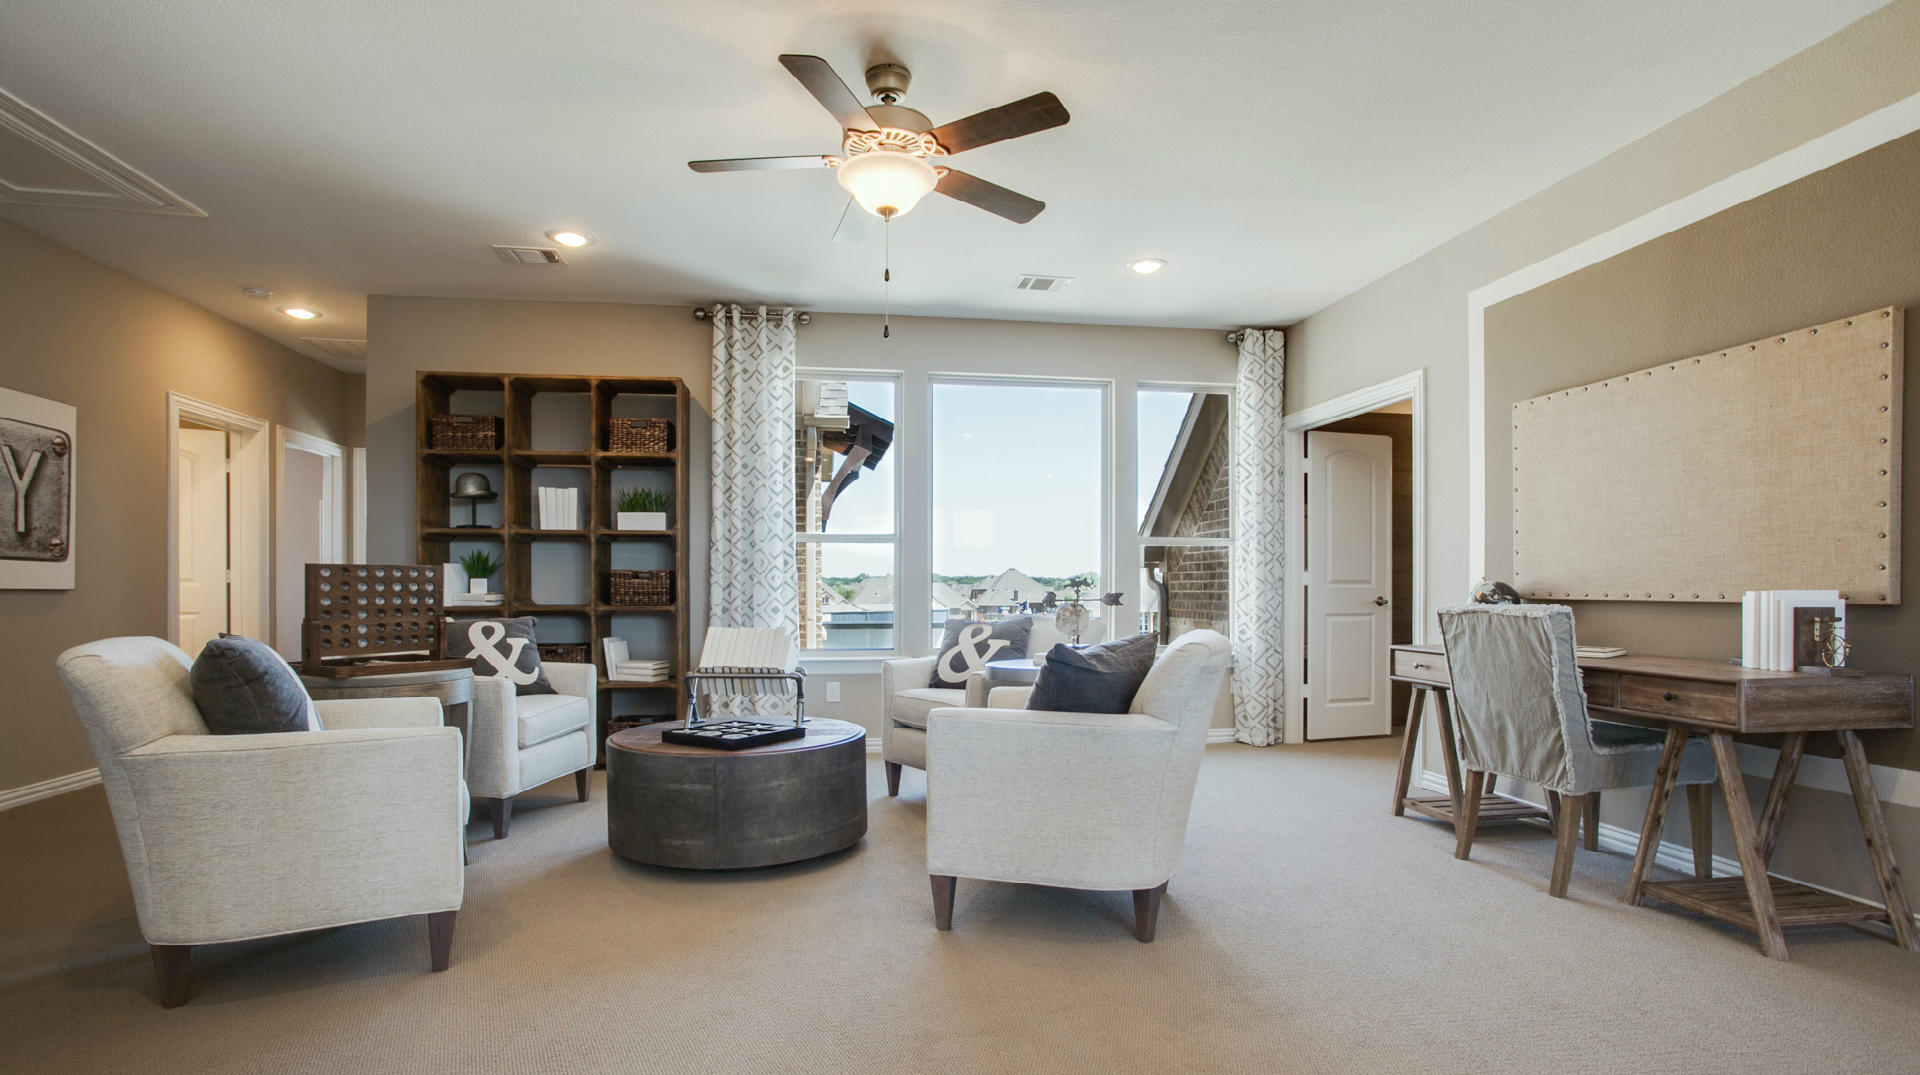 Reserve at Forest Glenn by Pulte Homes image 5